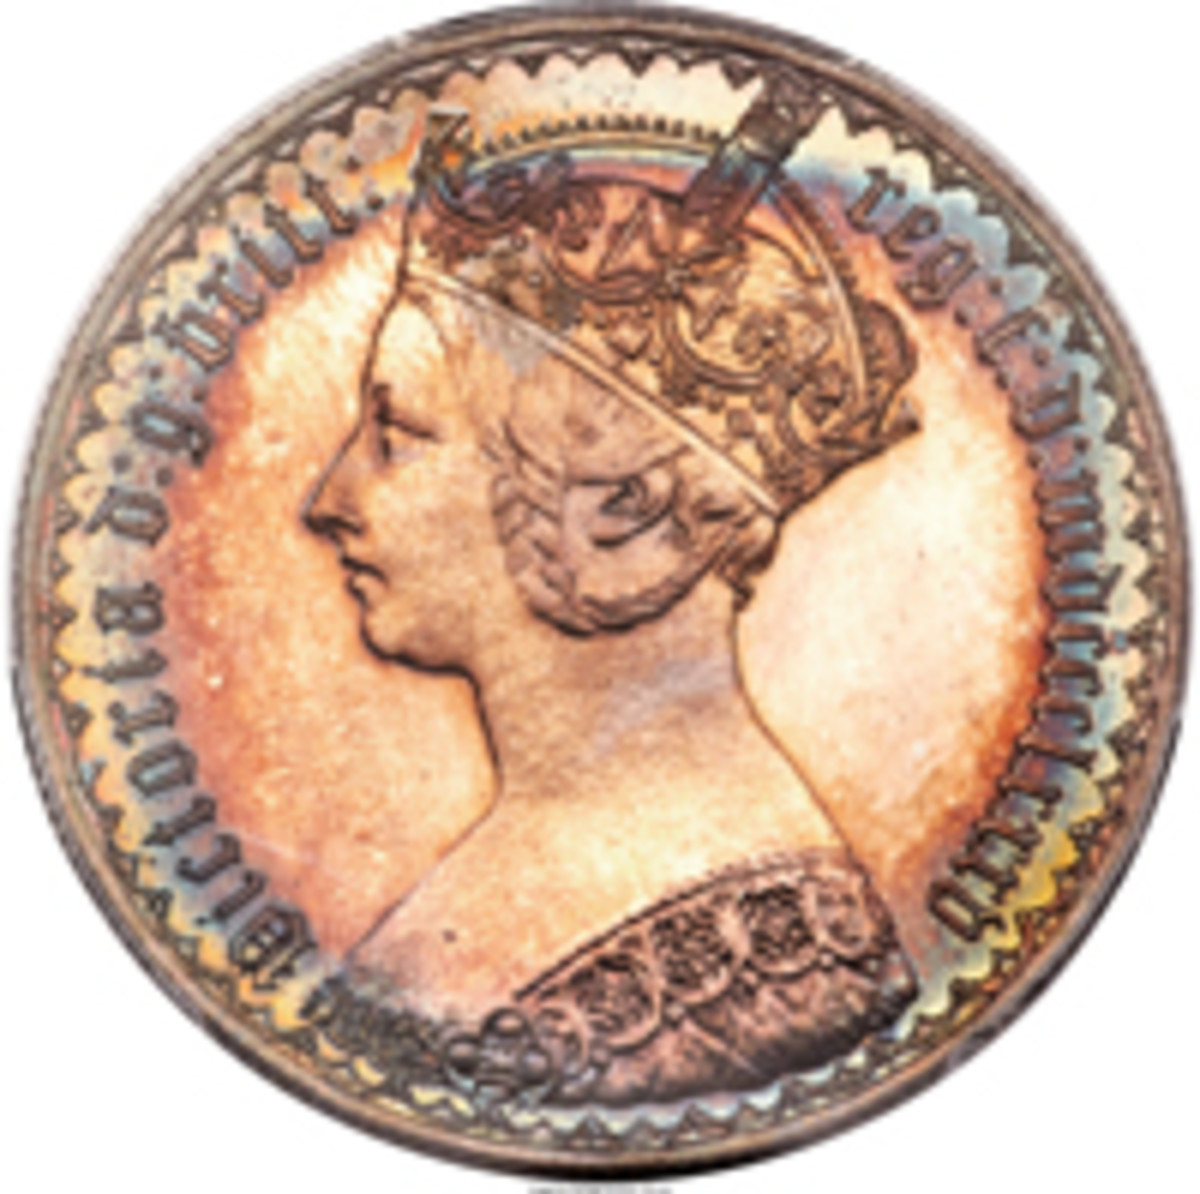 "… ""awash in amber iridescence, surrounded by hues of royal blue and celadon"" … Obverse of delightfully toned Victoria 1885 proof florin (KM-746.4, S-3900). (Image courtesy and © www.ha.com)"